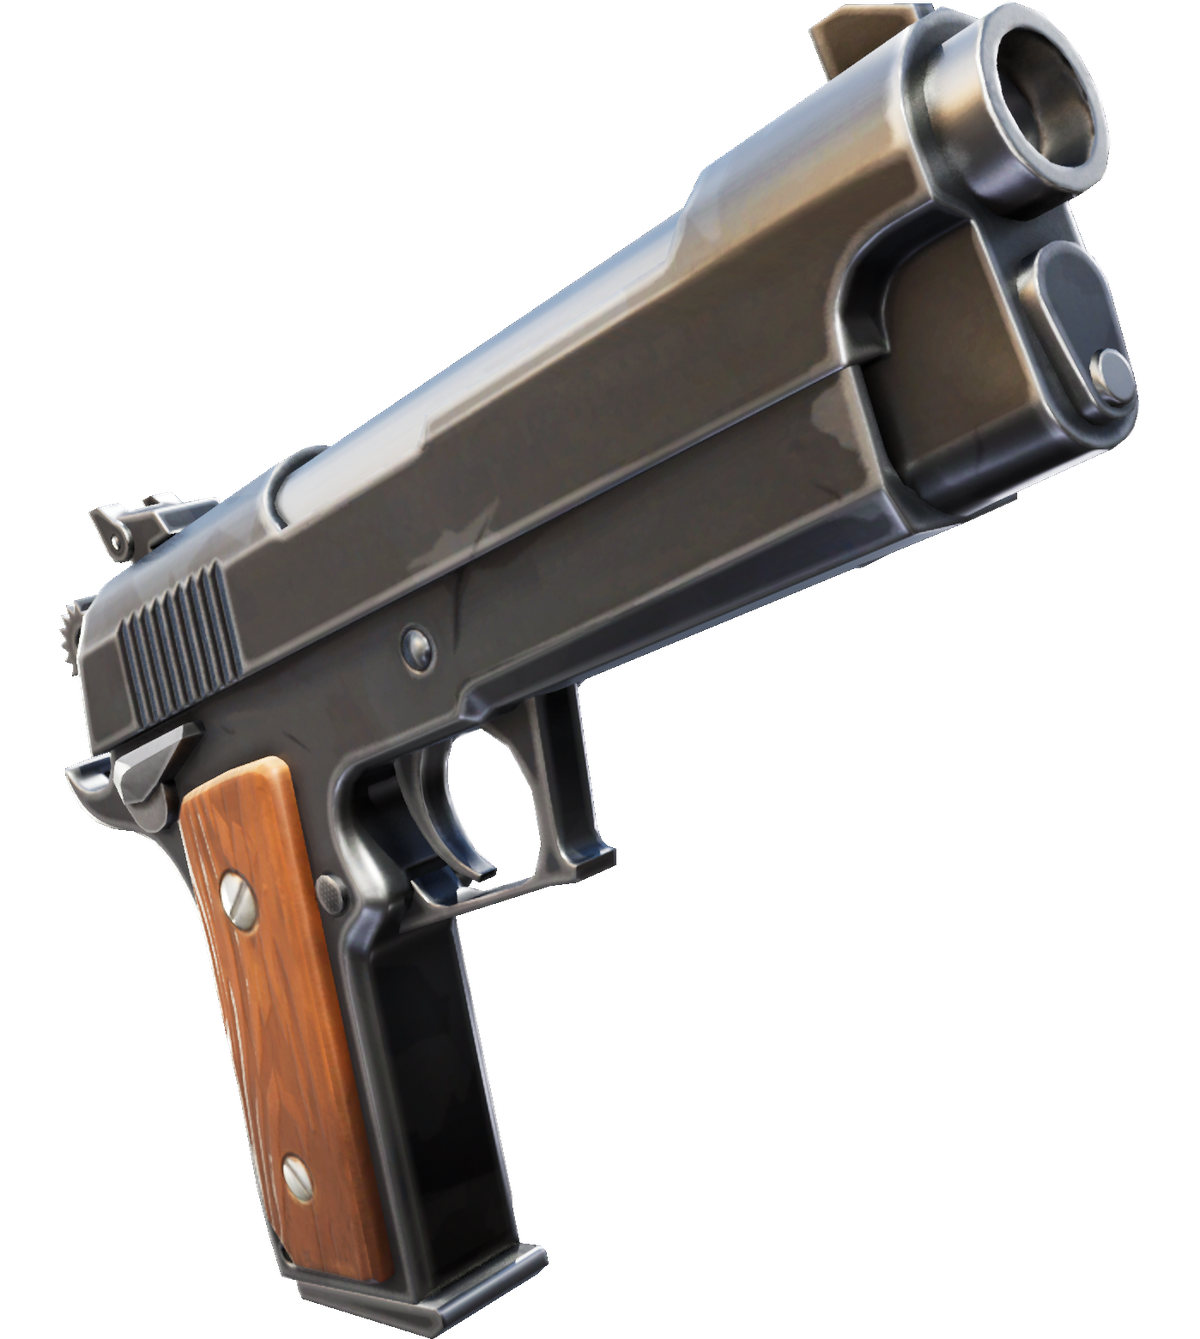 Fortnite Chapter 2 Pistol Common